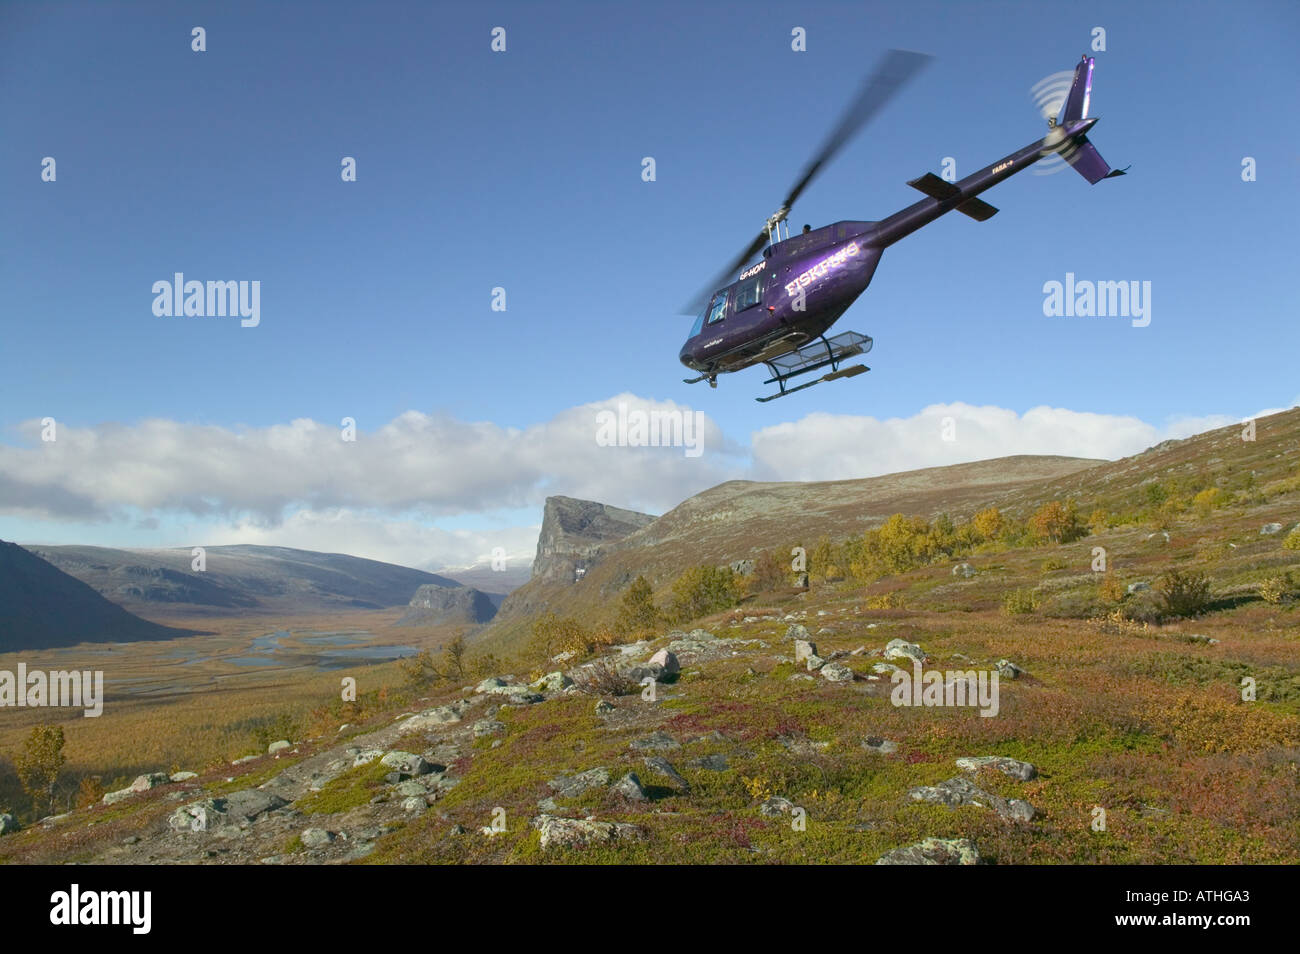 A helicopter on the edge of the Rapa Valley; Mt Sarek National Park, Laponia World Heritage Area, Lapland, Sweden. Stock Photo